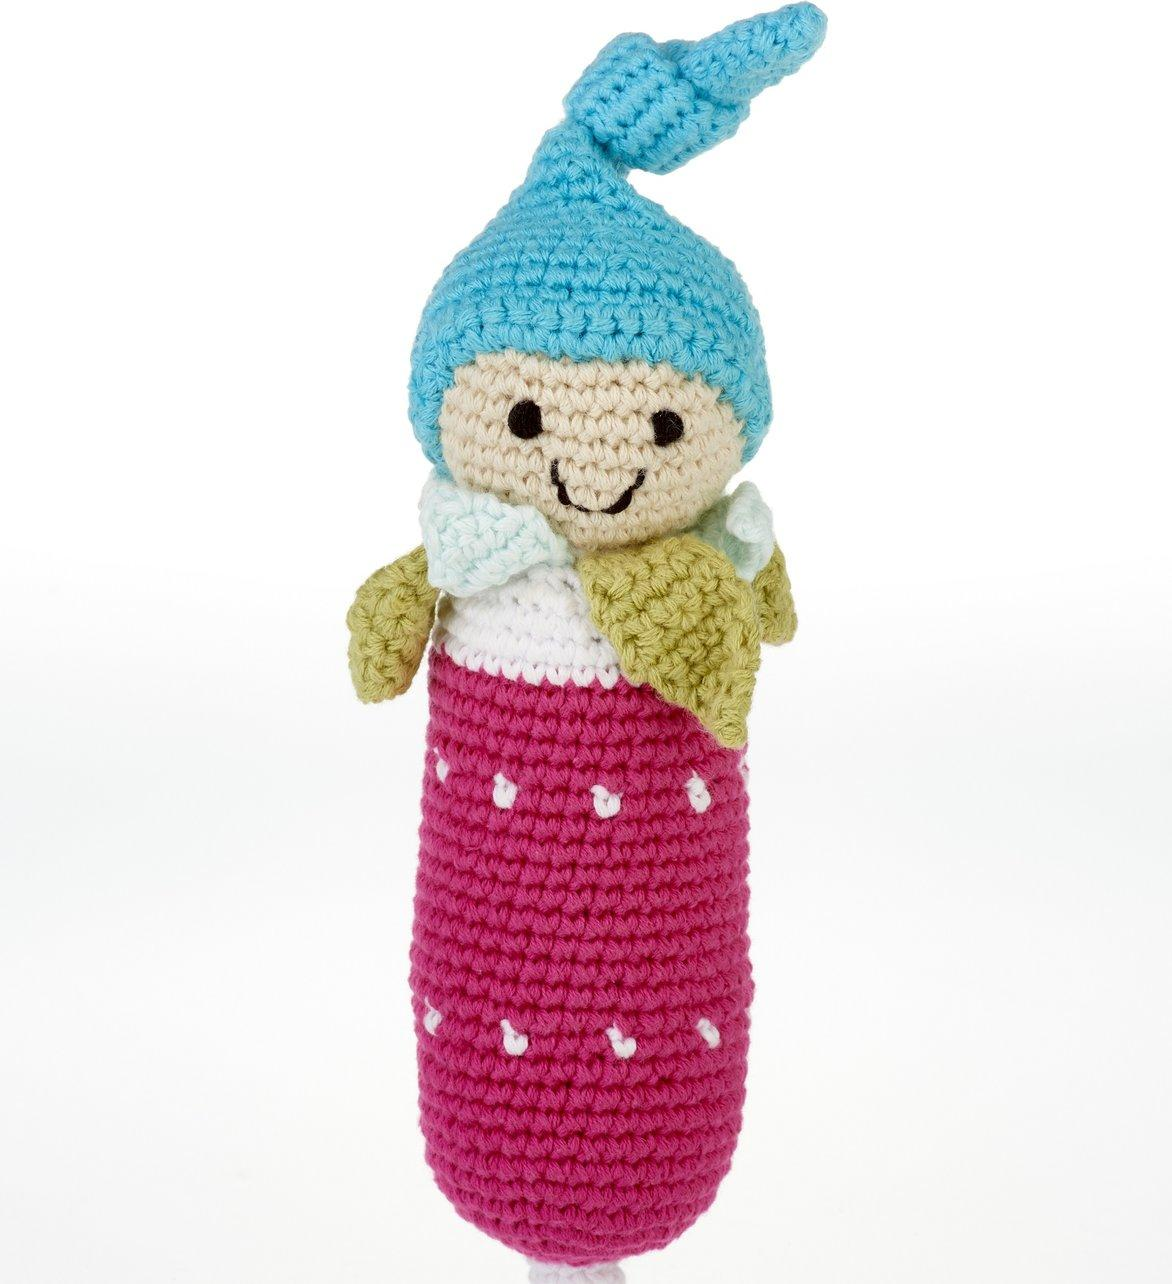 Pink radish baby toy with smiley face and blue bobble hat